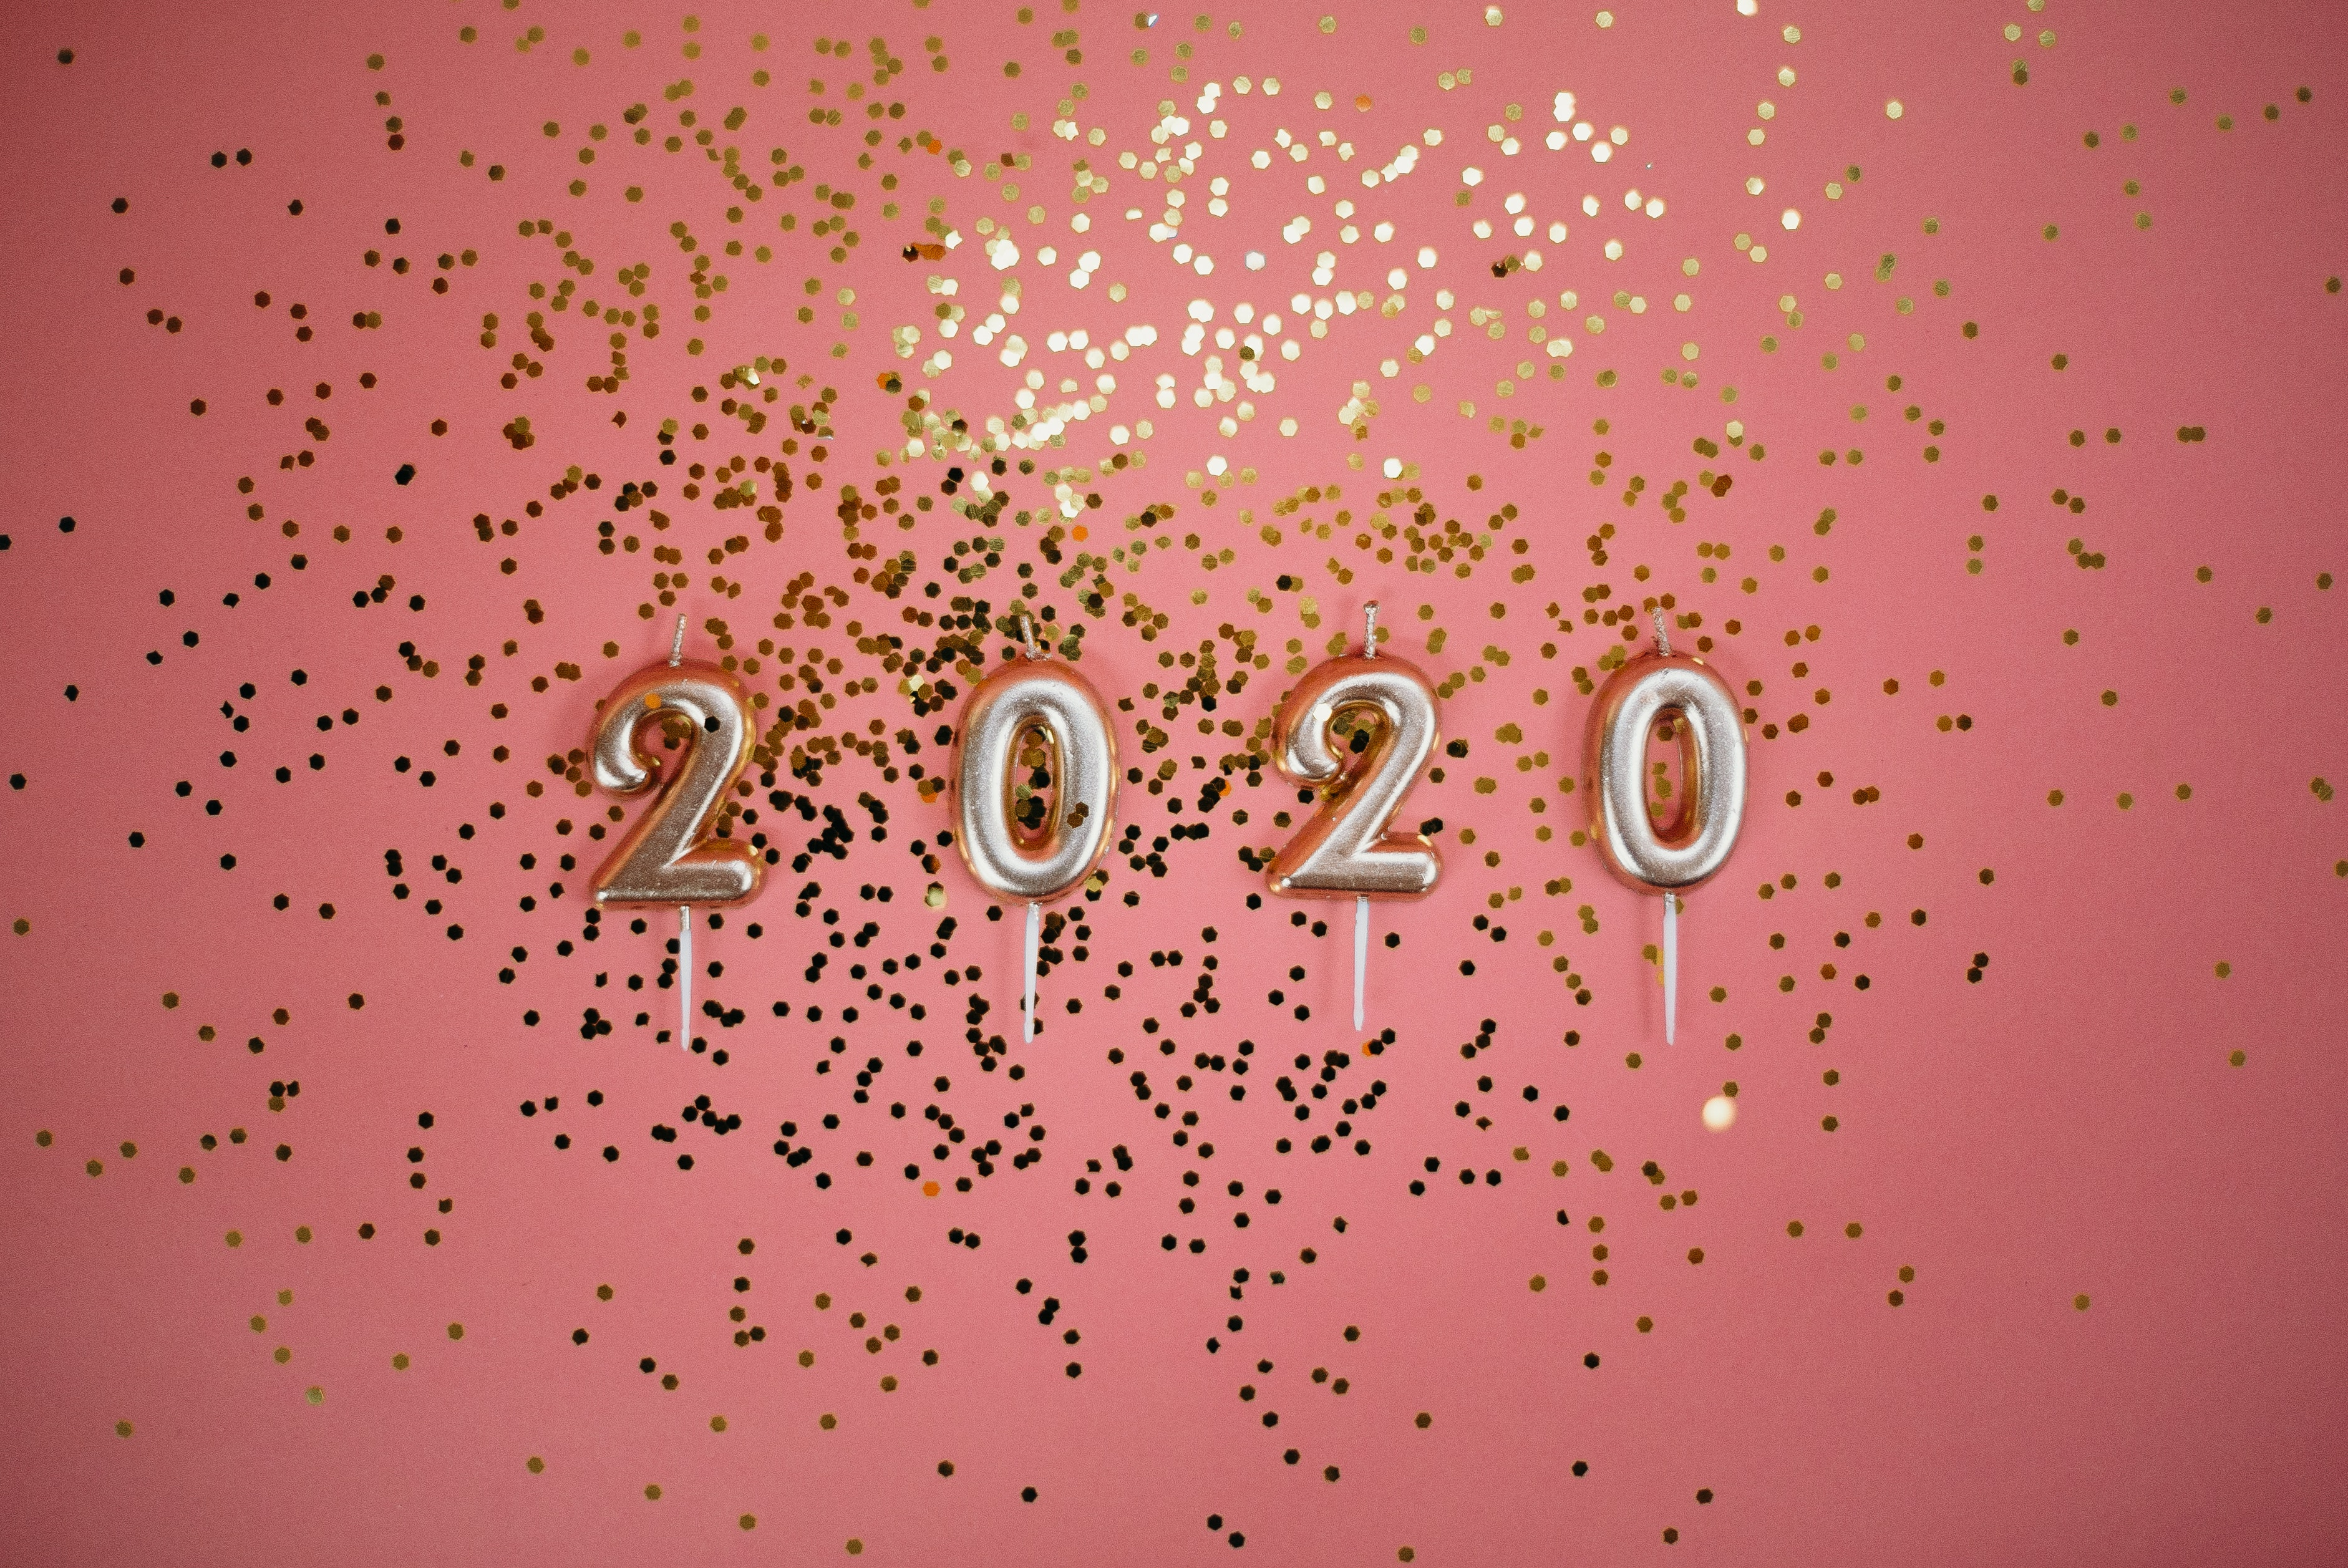 photo-of-2020-on-pink-background-3401900